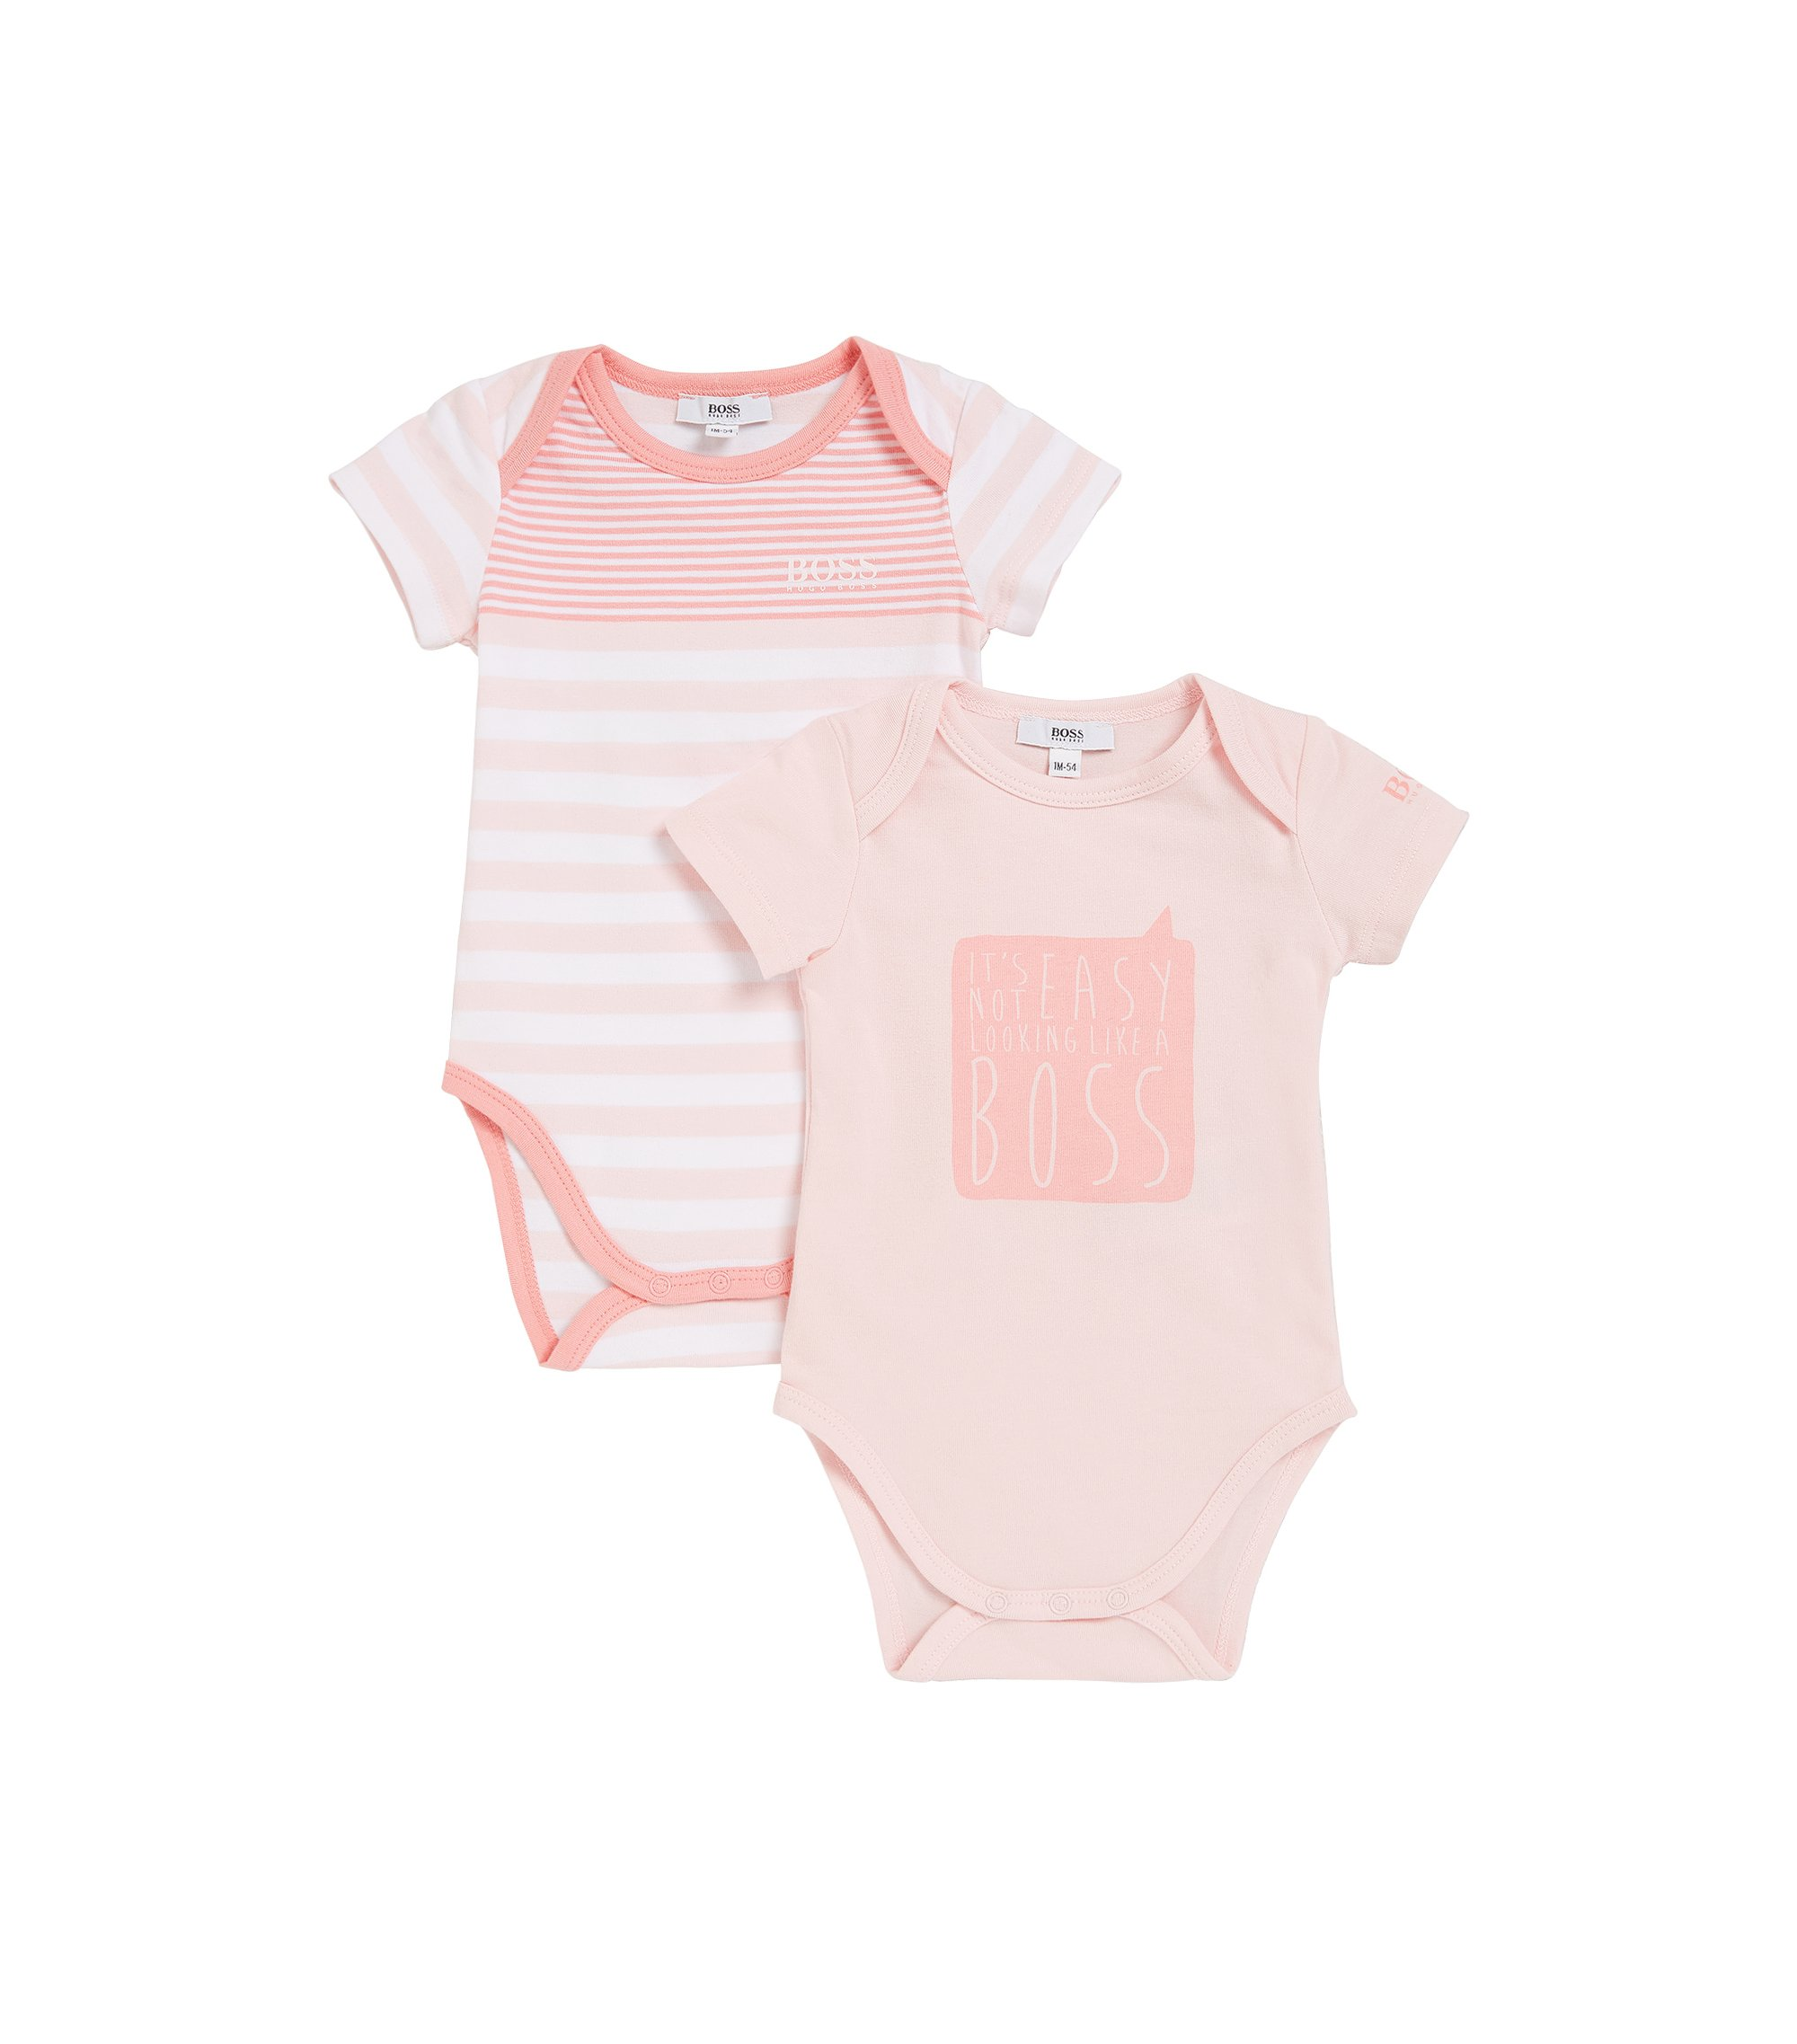 Baby two-pack of single-jersey bodysuits, light pink